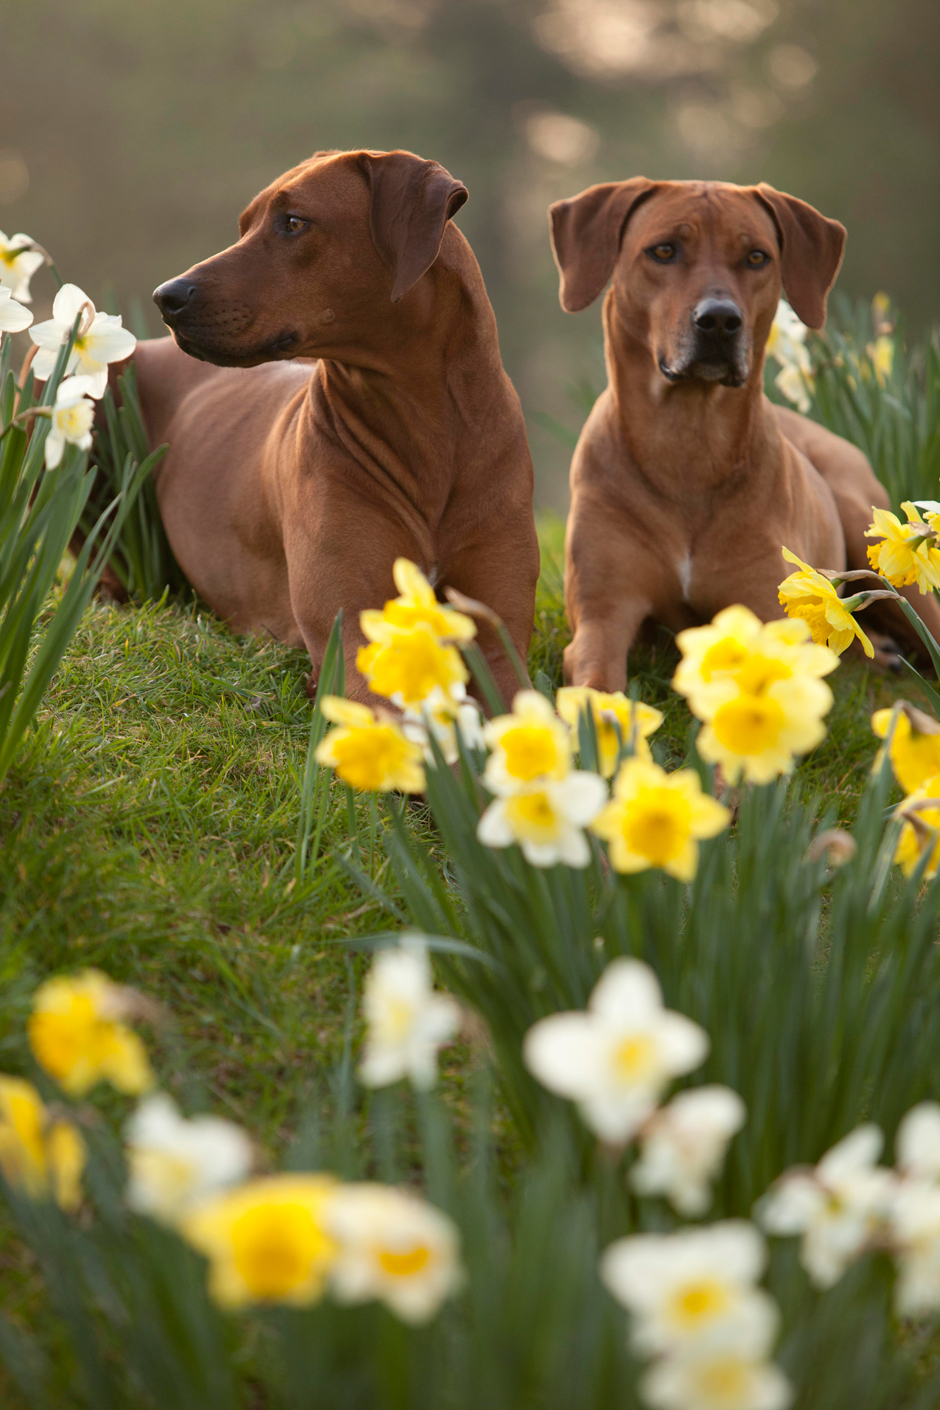 MG 9561 Spring has Sprung as they say...so heres some Rhodesian Ridgebacks & Daffodils